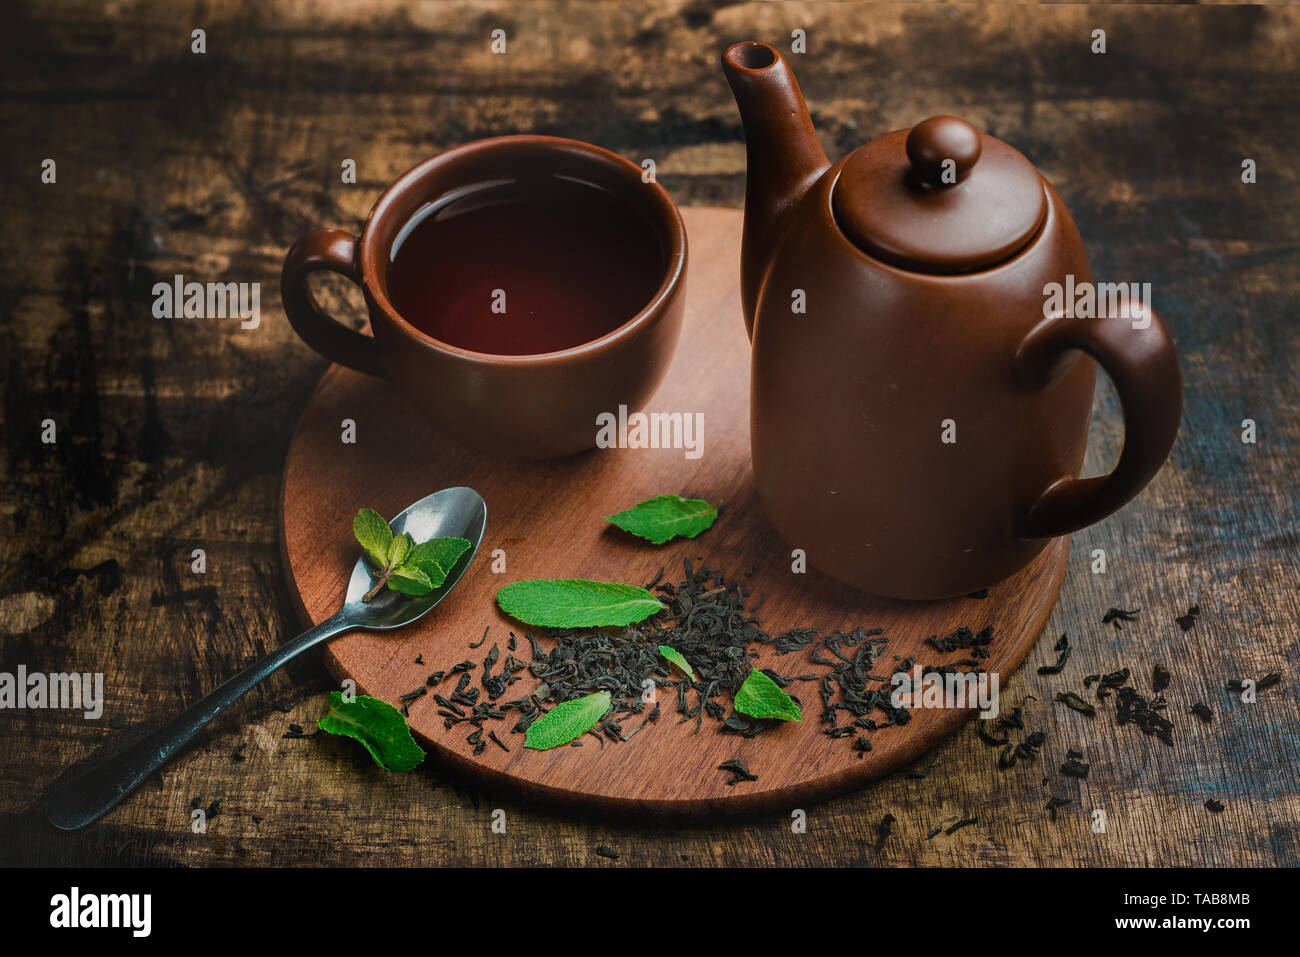 Mint tea in brown ceramic cup and teapot on a warm wooden background with tea brew and mint leaves. Stock Photo